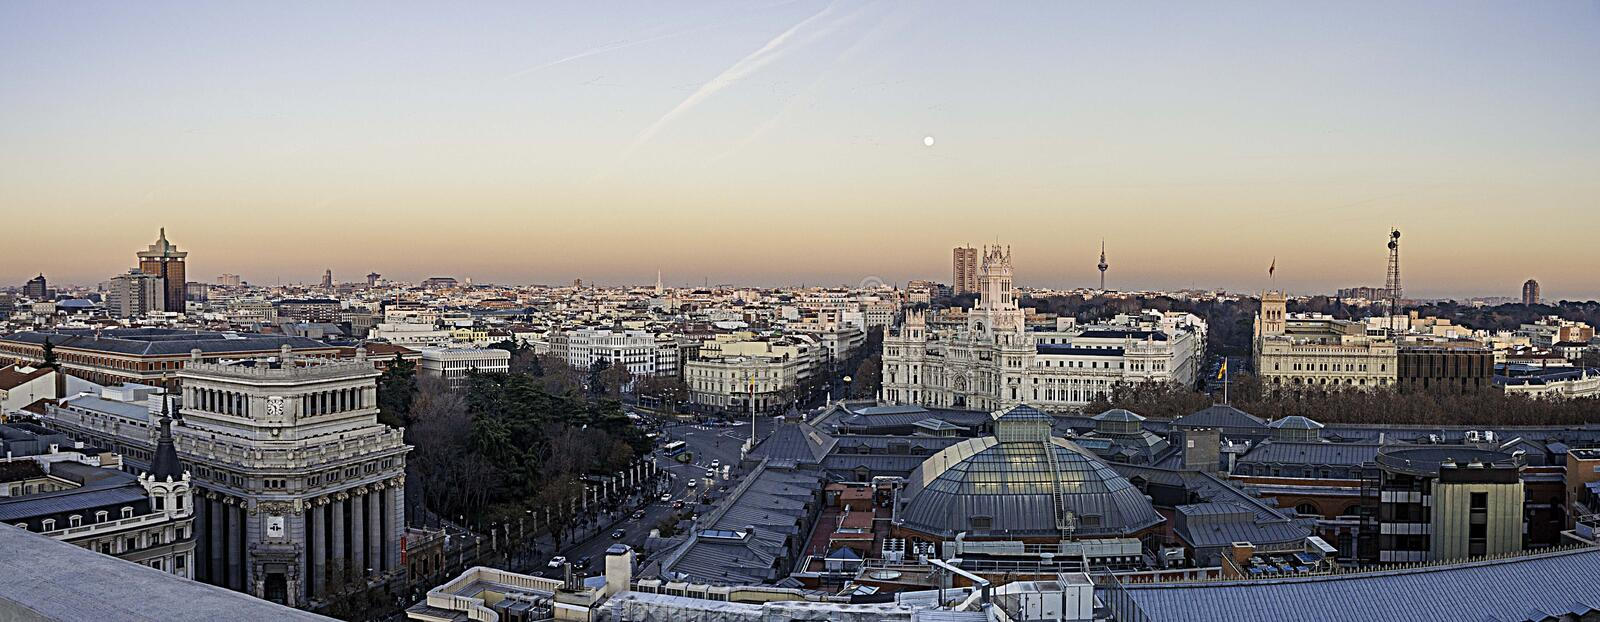 City Landscape during Sunset royalty free stock photography